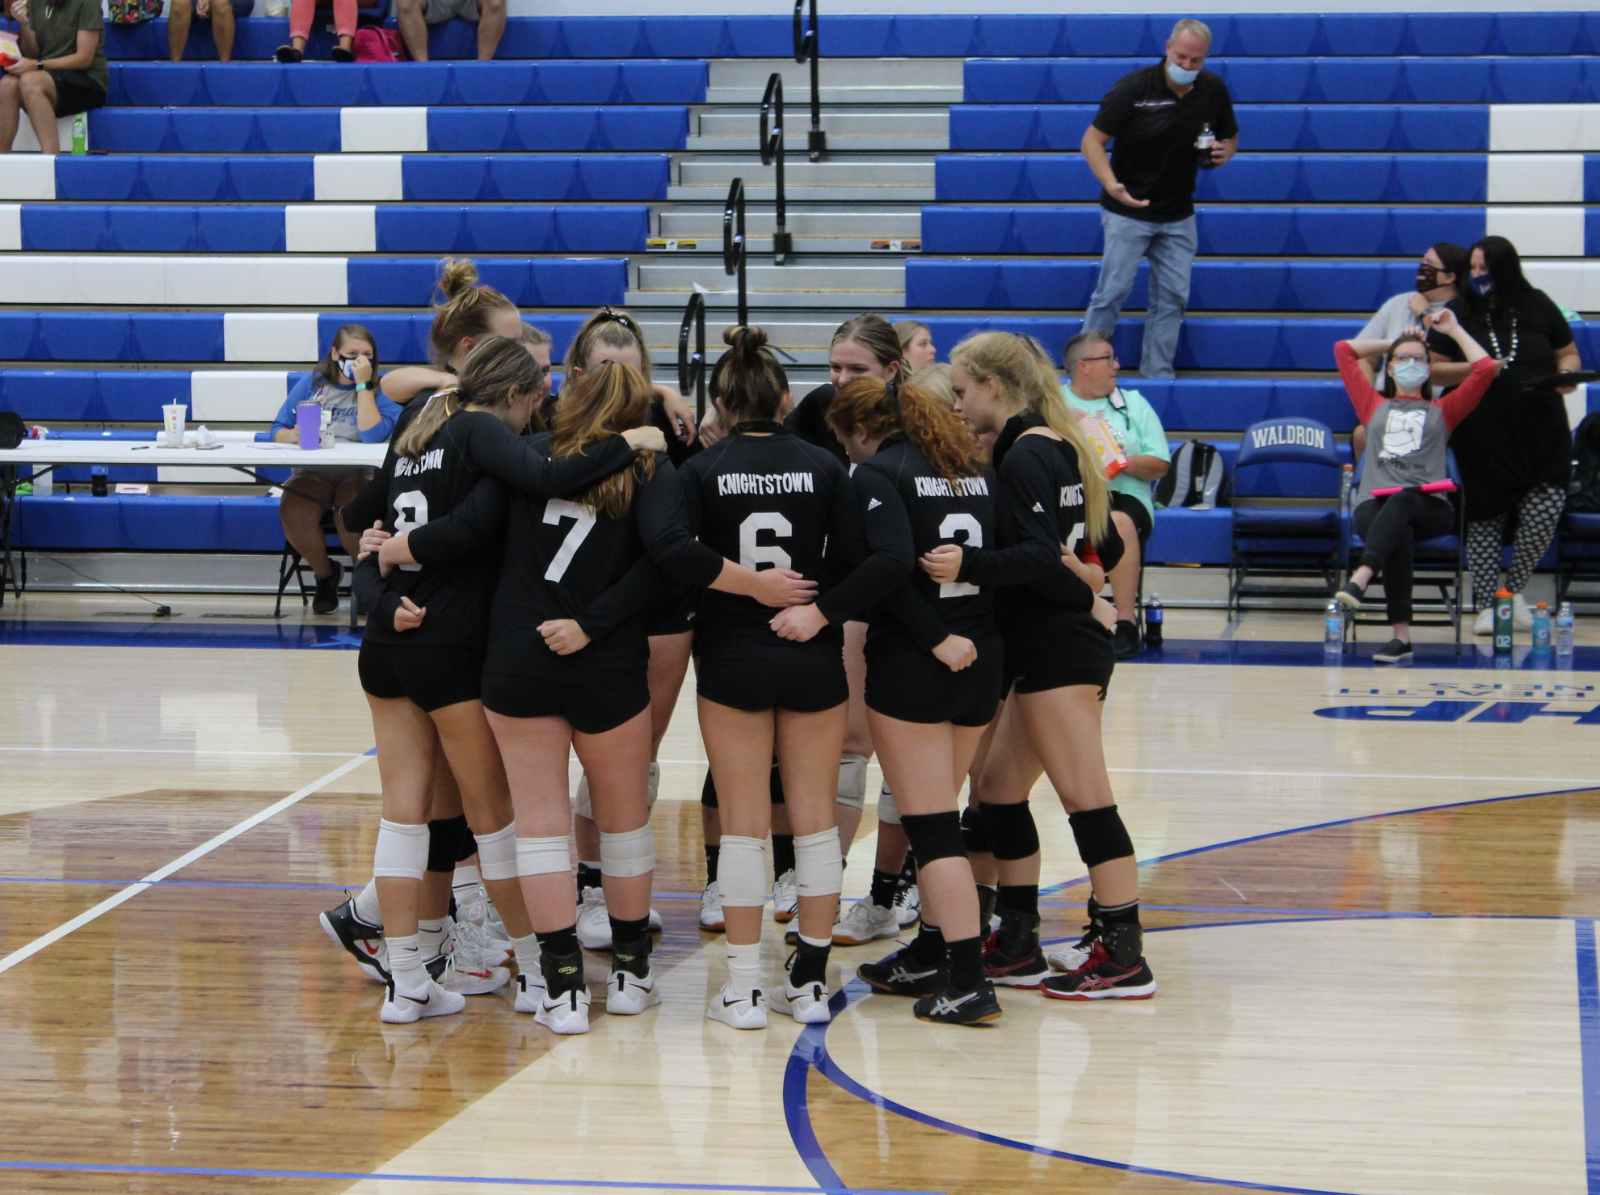 Panthers travel to Waldron and fall in 3